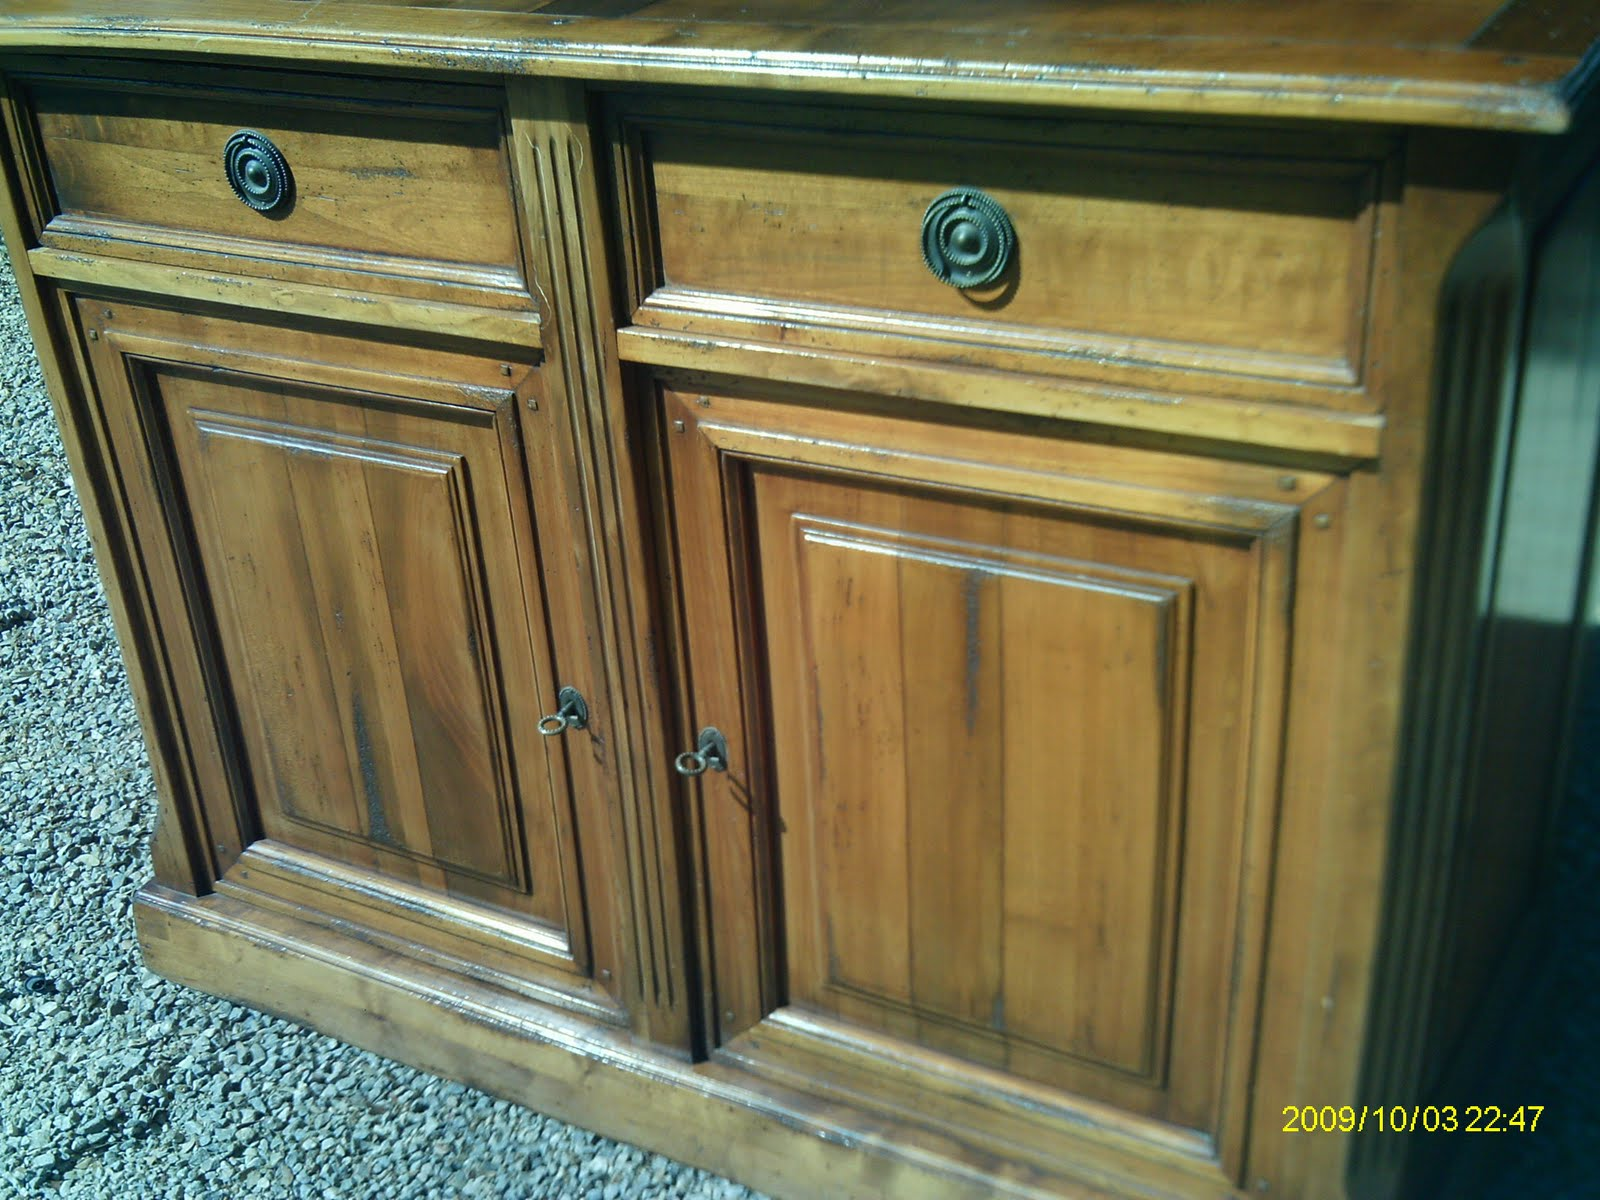 ancien buffet bahut rustique d but xxeme i. Black Bedroom Furniture Sets. Home Design Ideas